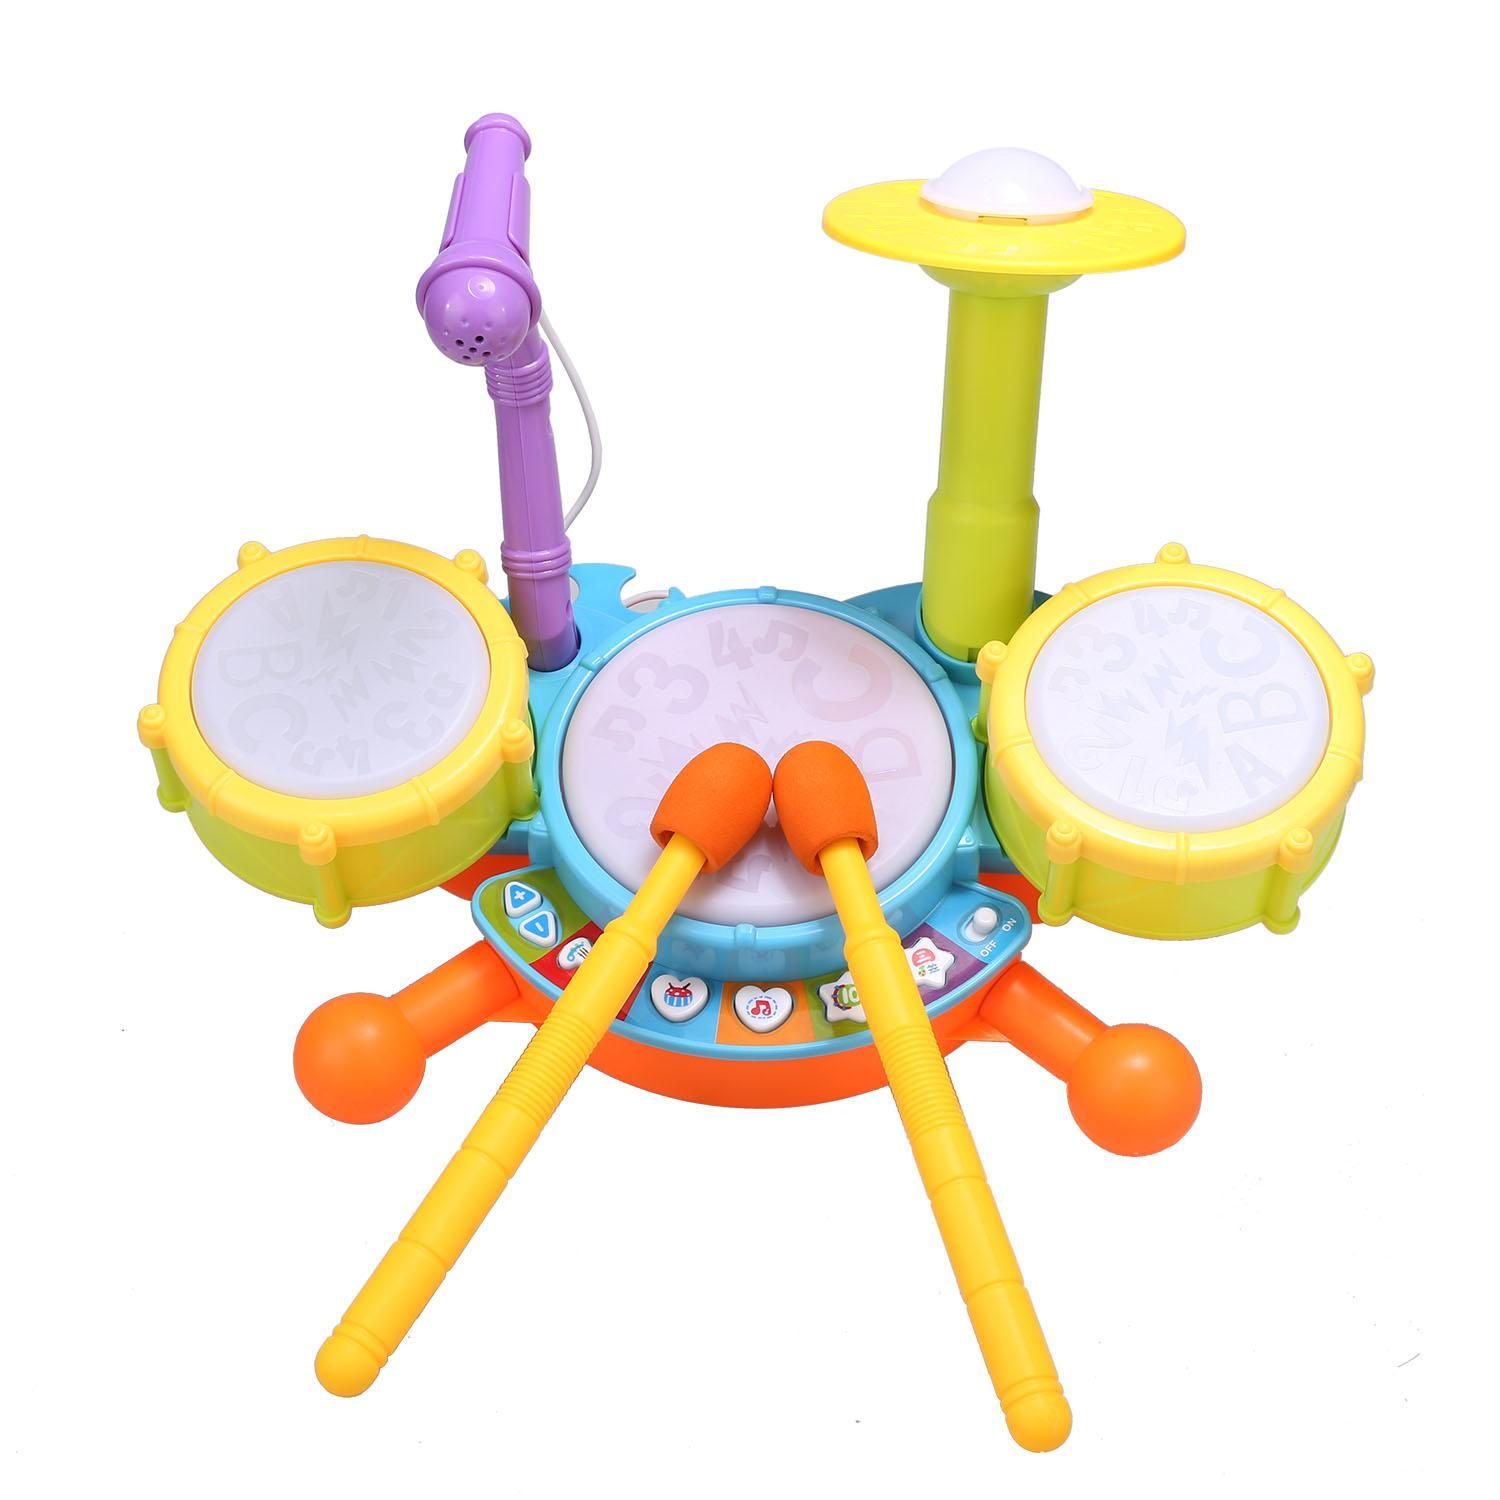 Multicolor Plastic Educational Development Music Toy Electric Beats Jazz Drum Set 3